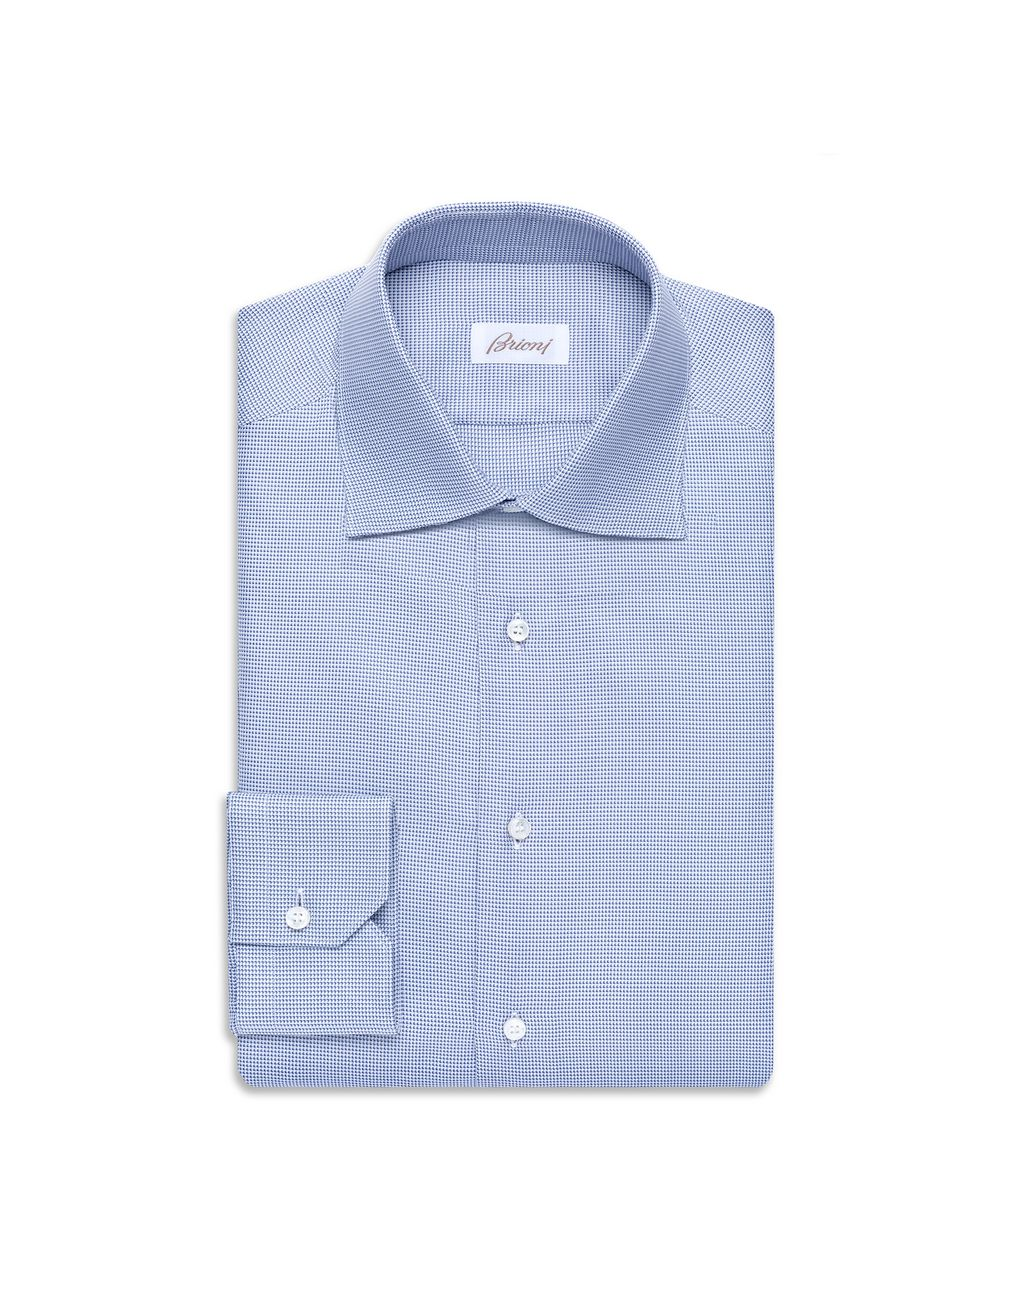 BRIONI Bluette and White Micro-Design Formal Shirt Formal shirt U f